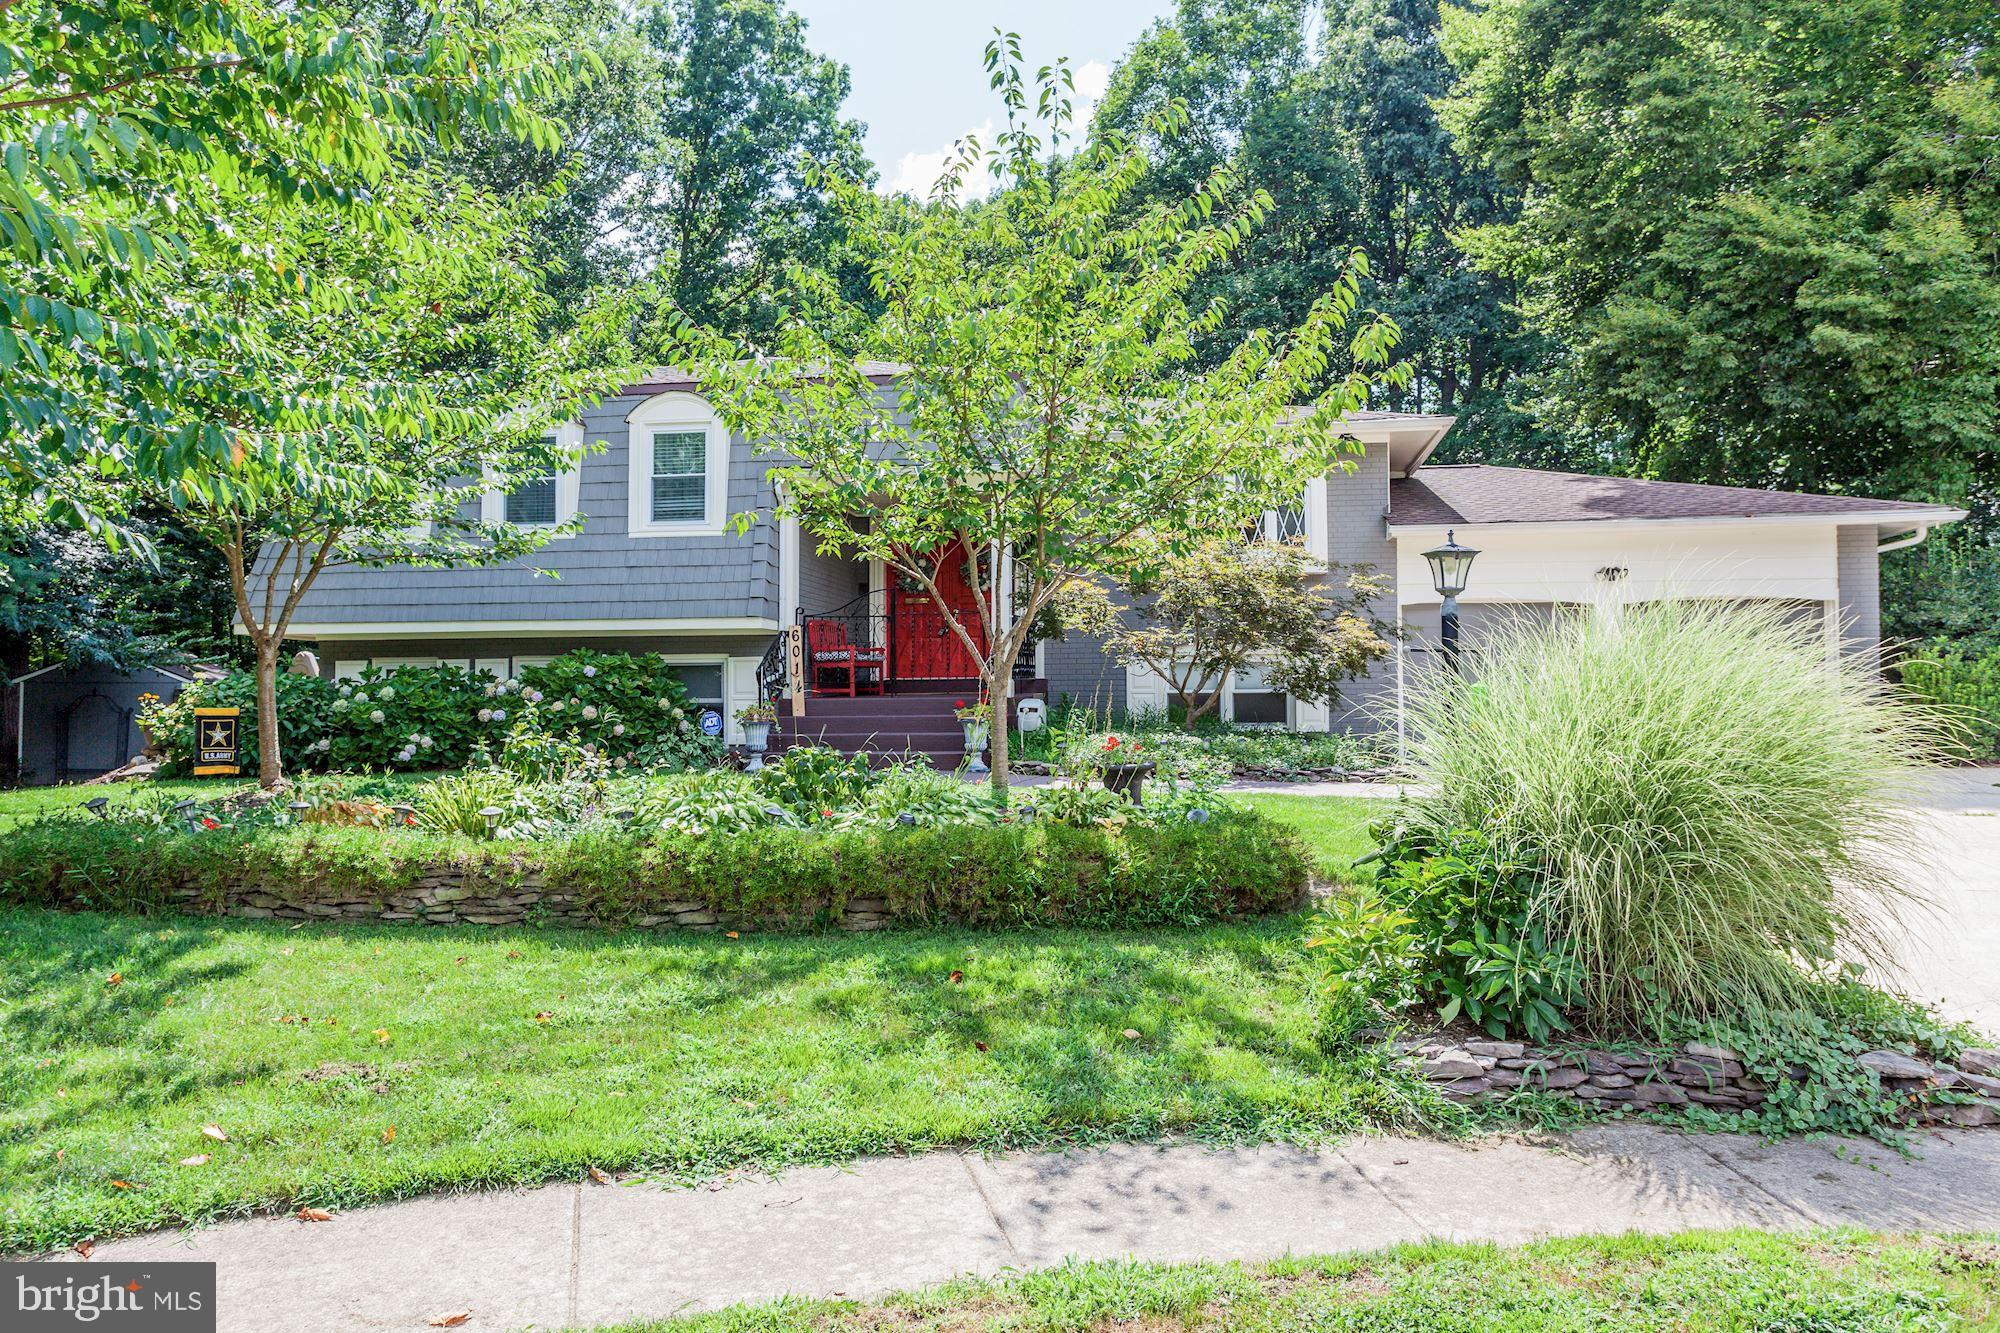 Offers due 8/4 by 6pm. Welcome home to this stunning split-level on a secluded cul-de-sac in West Springfield. Enjoy the great outdoor space with a large deck & patio that overlook a sparkling in-ground pool.  This private oasis overlooks a serene wooded setting complete with a creek bordering the property. The eat-in kitchen has ALL NEW stainless steel appliances, & opens to a formal dining room.  Custom crown molding and pristine hardwoods throughout main level spill into a large, light-filled sitting room. The spacious downstairs offers a large family room with a cozy, rock fireplace, and includes bonus space for a playroom and office. Both basement family room & large laundry room offer walk-out access to the backyard patio. Marble flooring takes you upstairs to the master suite, boasting his and her closets, along with a luxurious master bath with jetted spa tub. Upgrades include a NEW instant hot water heater, a new roof in 2018, fresh paint, crown moldings, stunning doorway casings, and plantation shutters.  Welcome home!